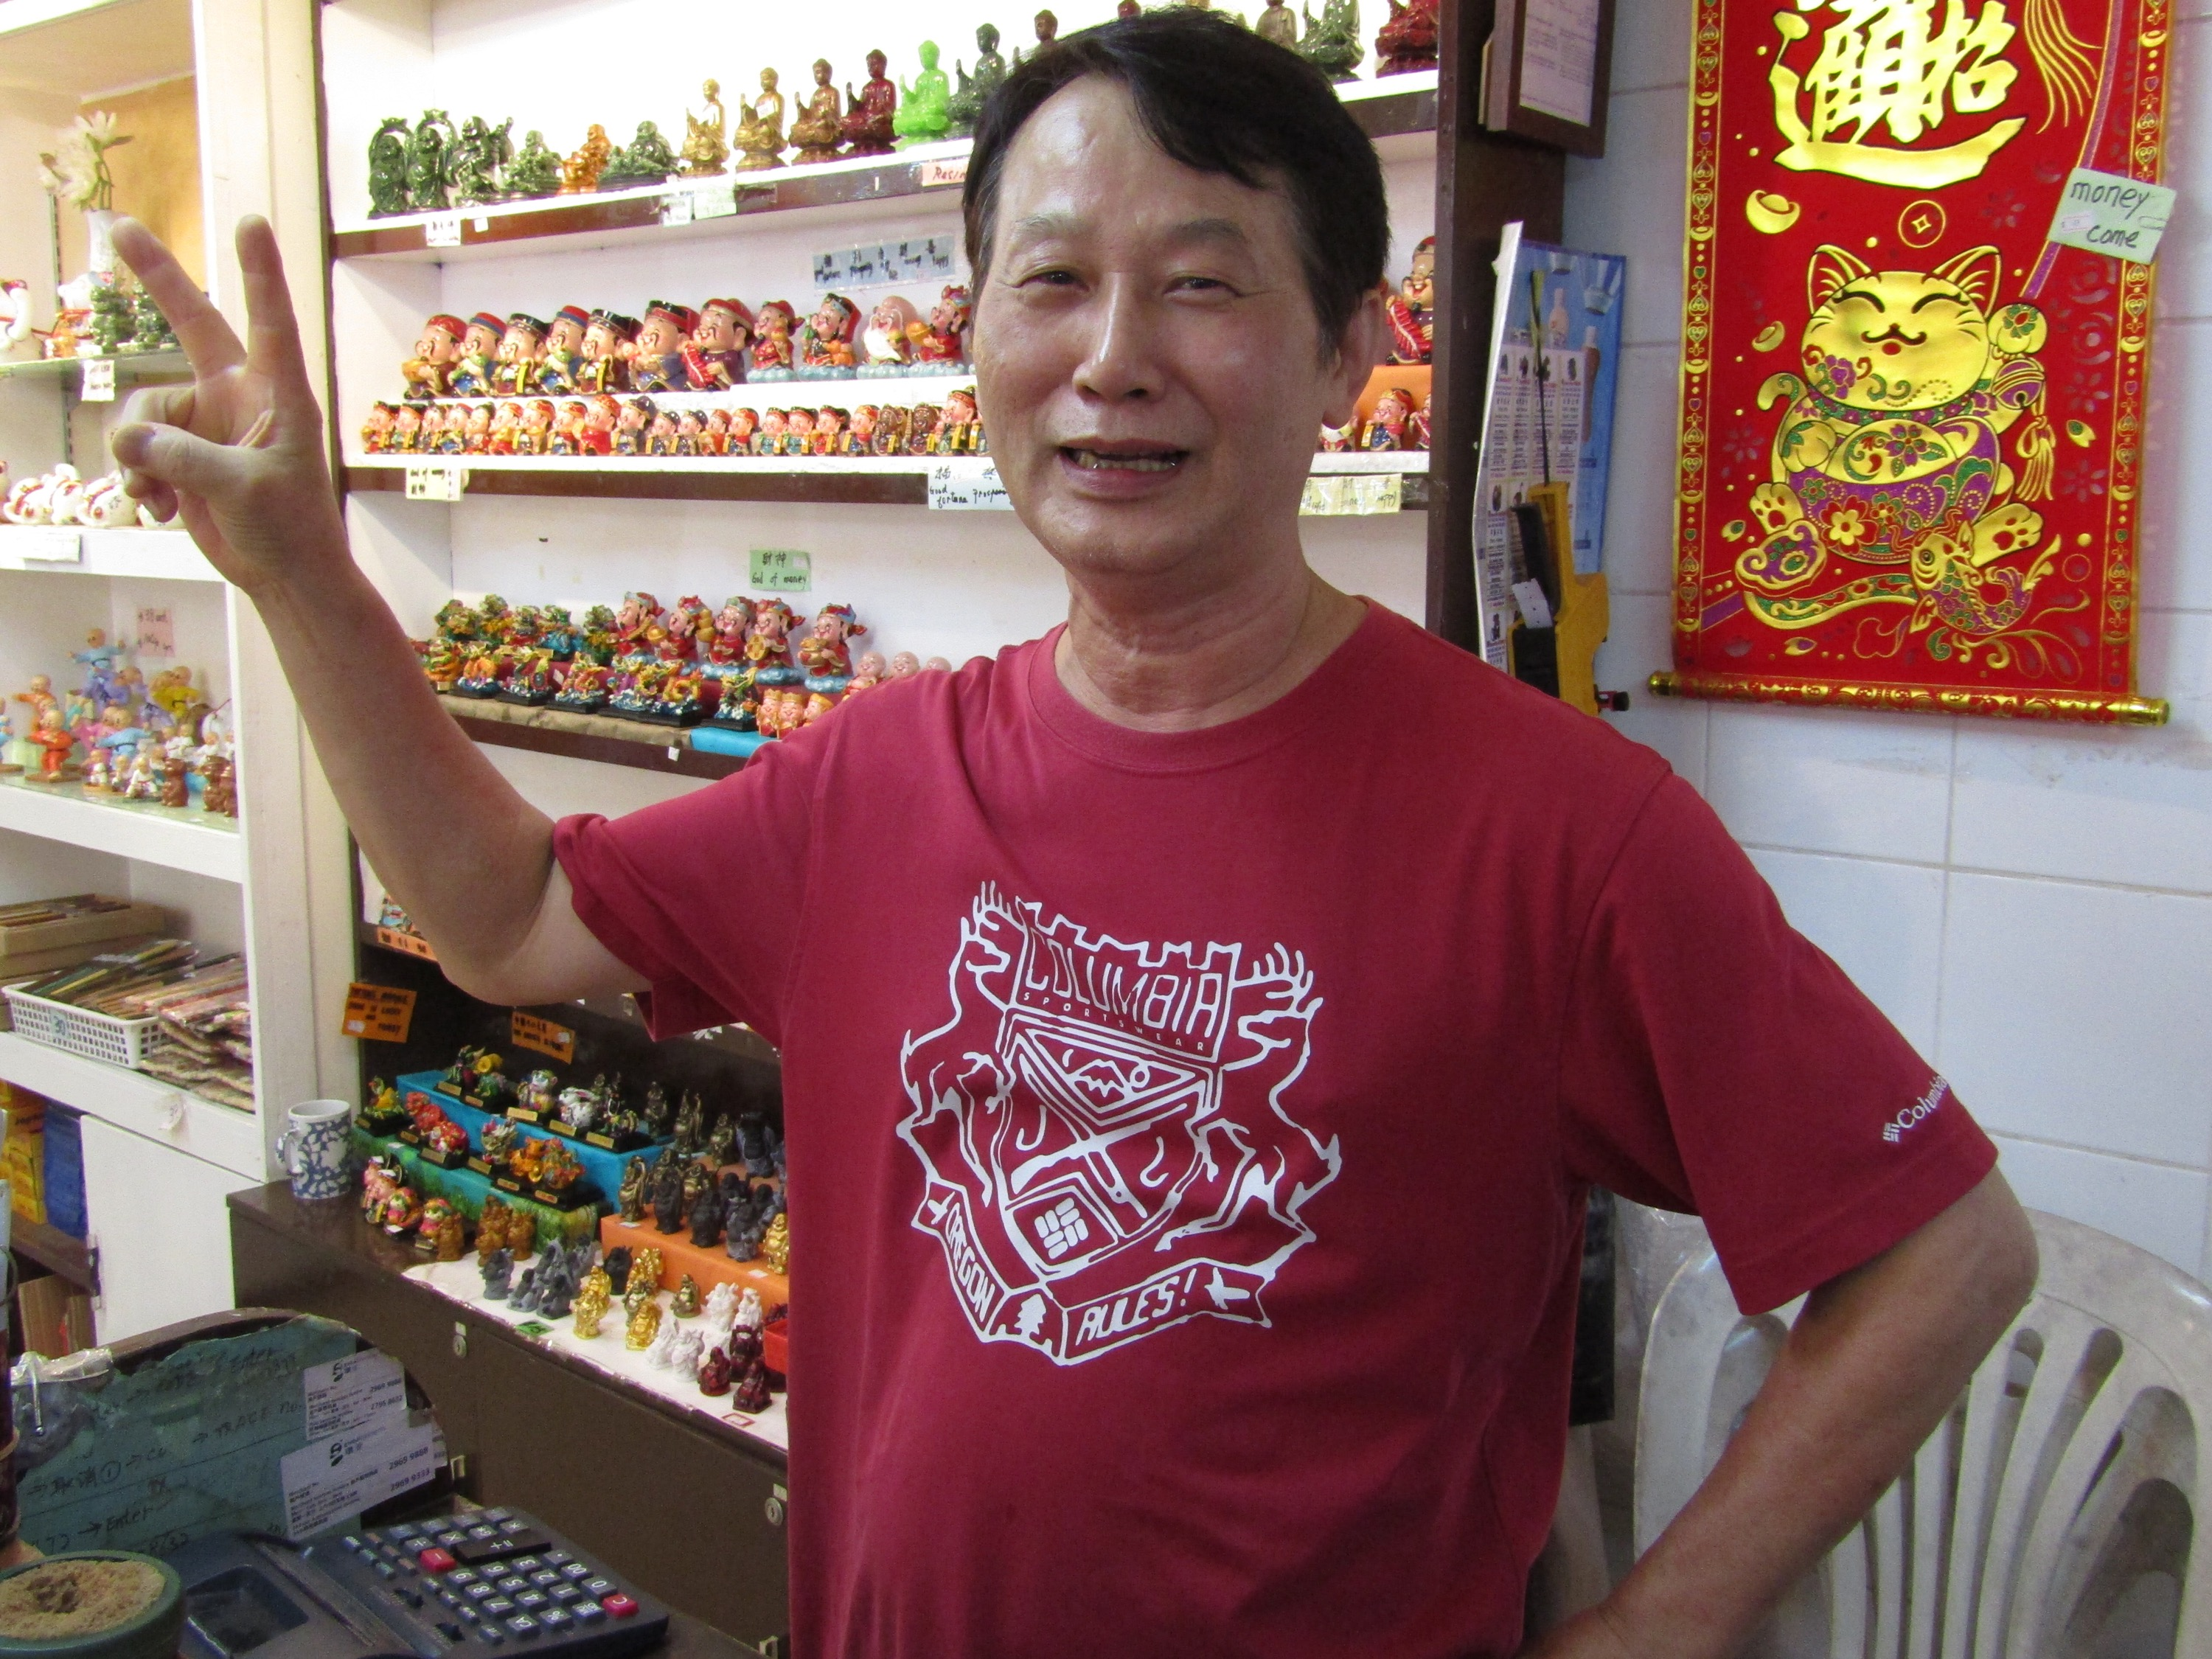 We bought some postcards at one of the shops in the village. the shopkeeper was wearing this Columbia t-shirt that read